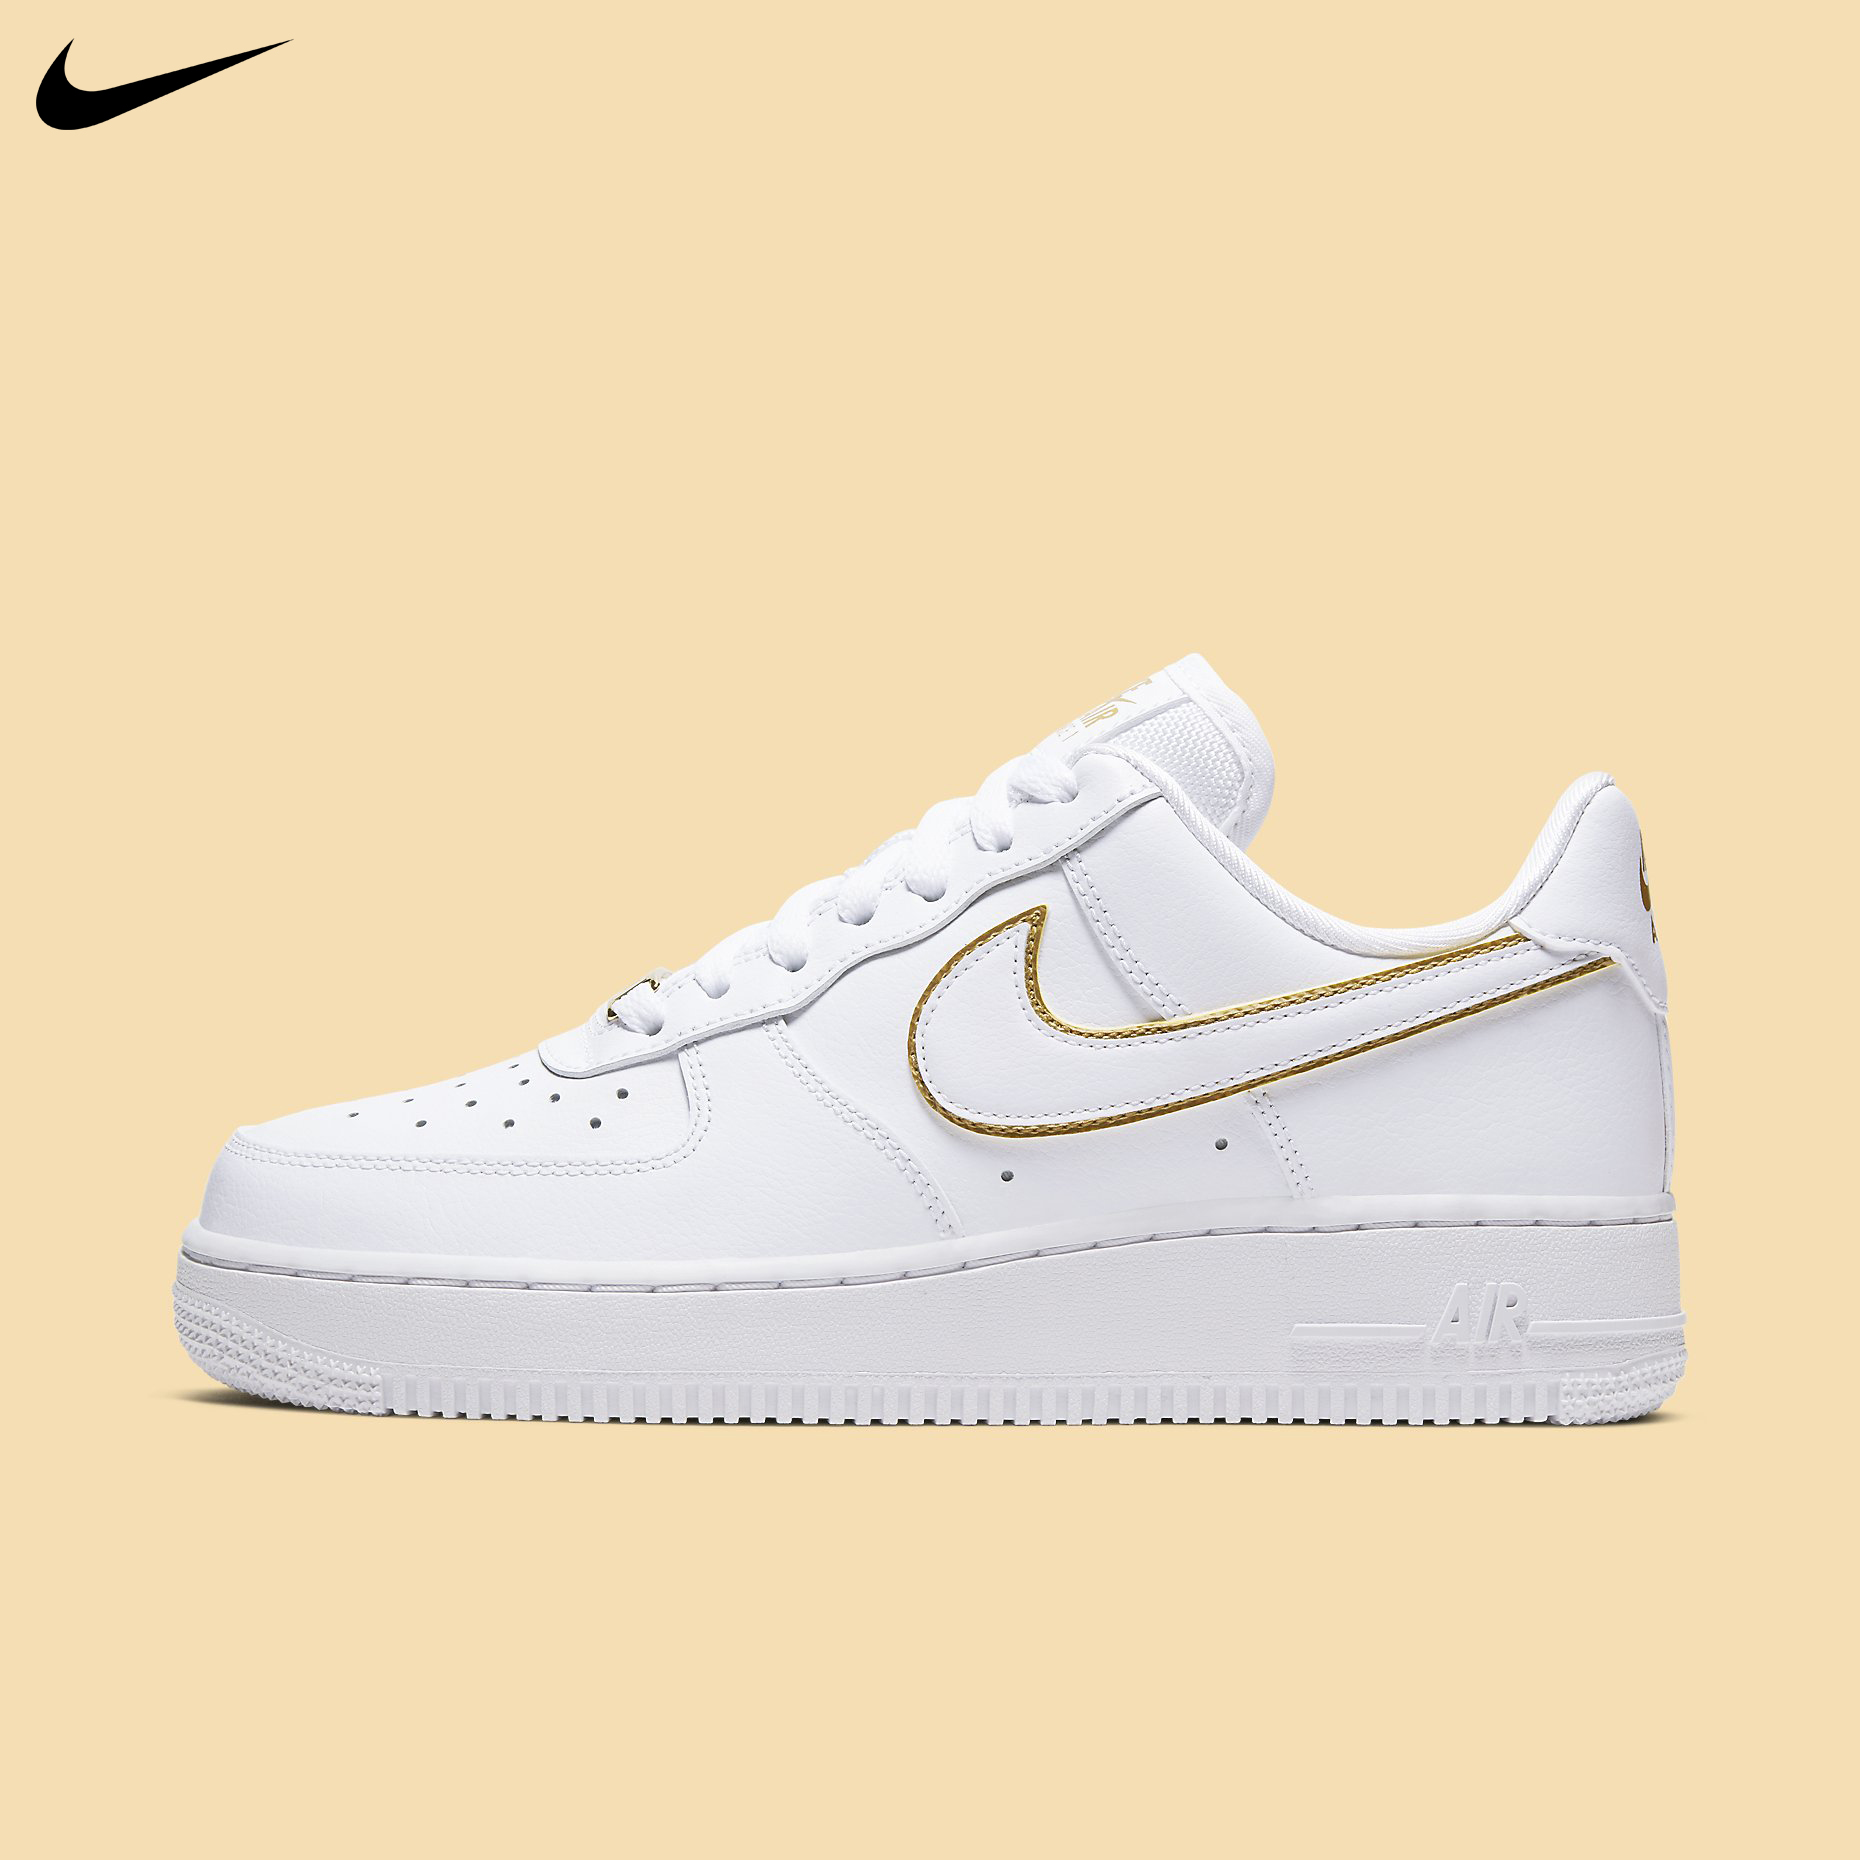 sutil pastel meditación  Nike Women's Air Force 1 '07 Essential White Gold Metallic Casual ESS  AO2132-102 | eBay